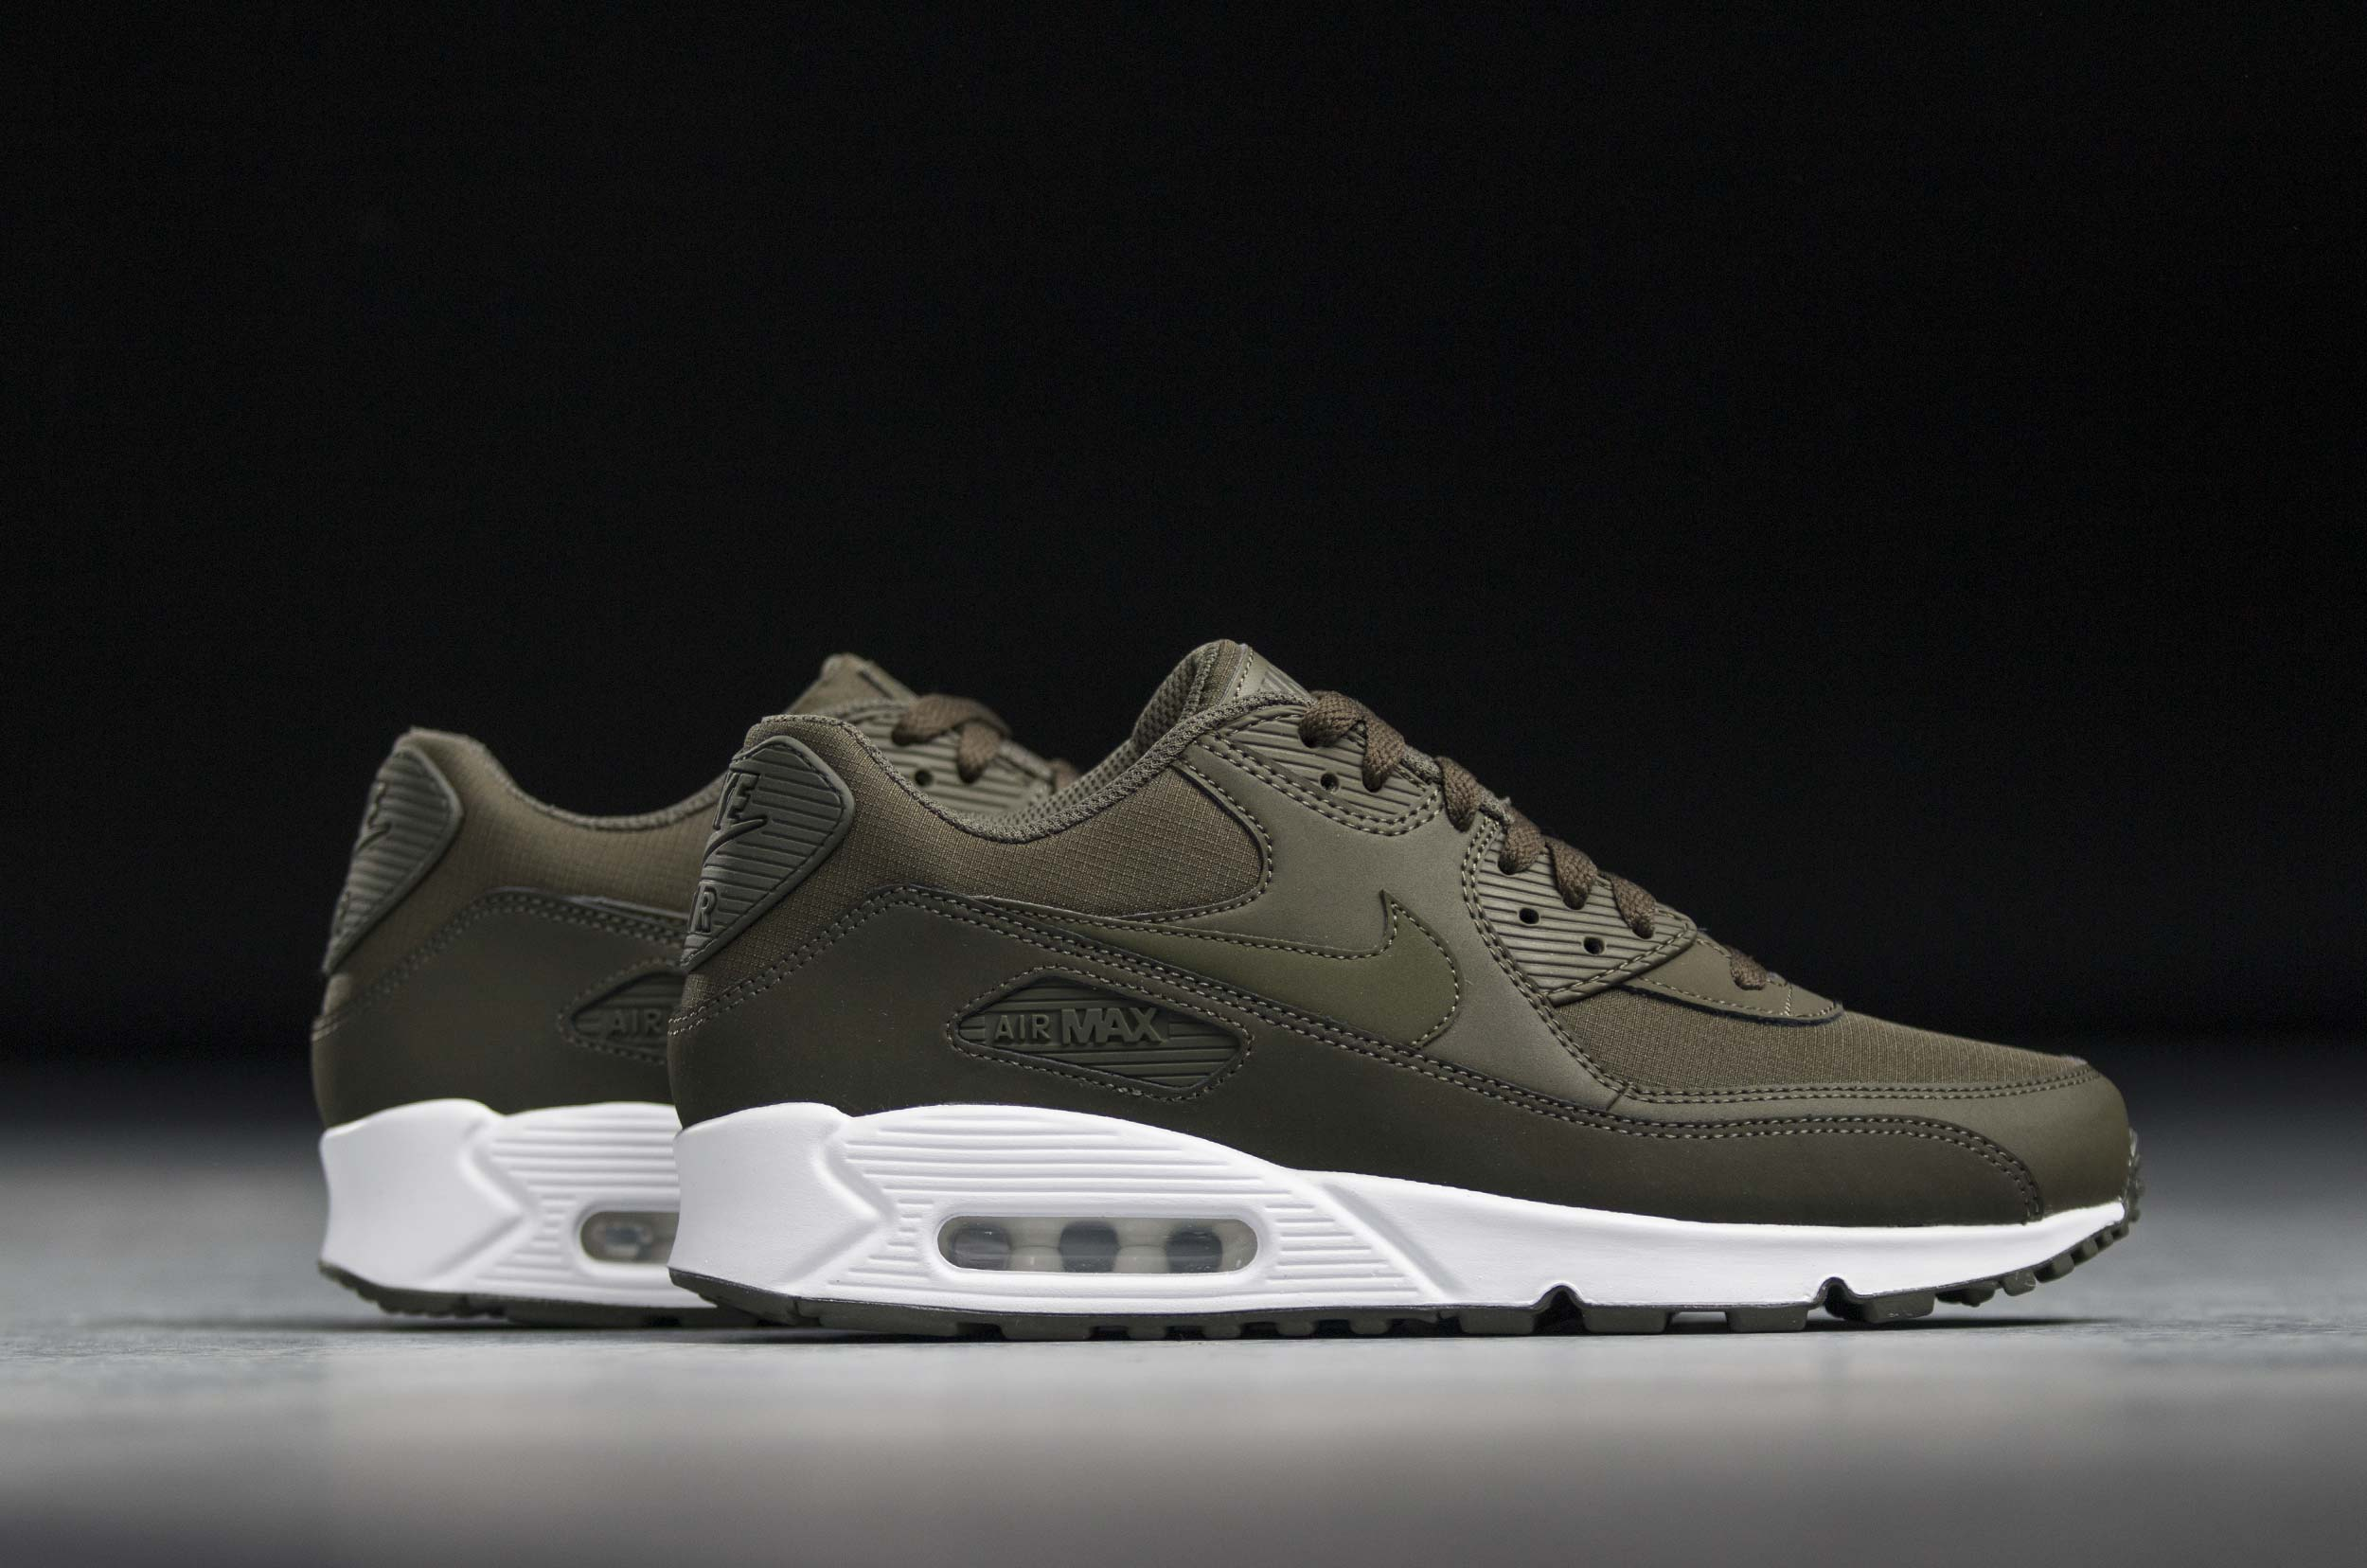 finest selection b9621 29a2a NIKE AIR MAX 90 ESSENTIAL 537384-310 Χακί